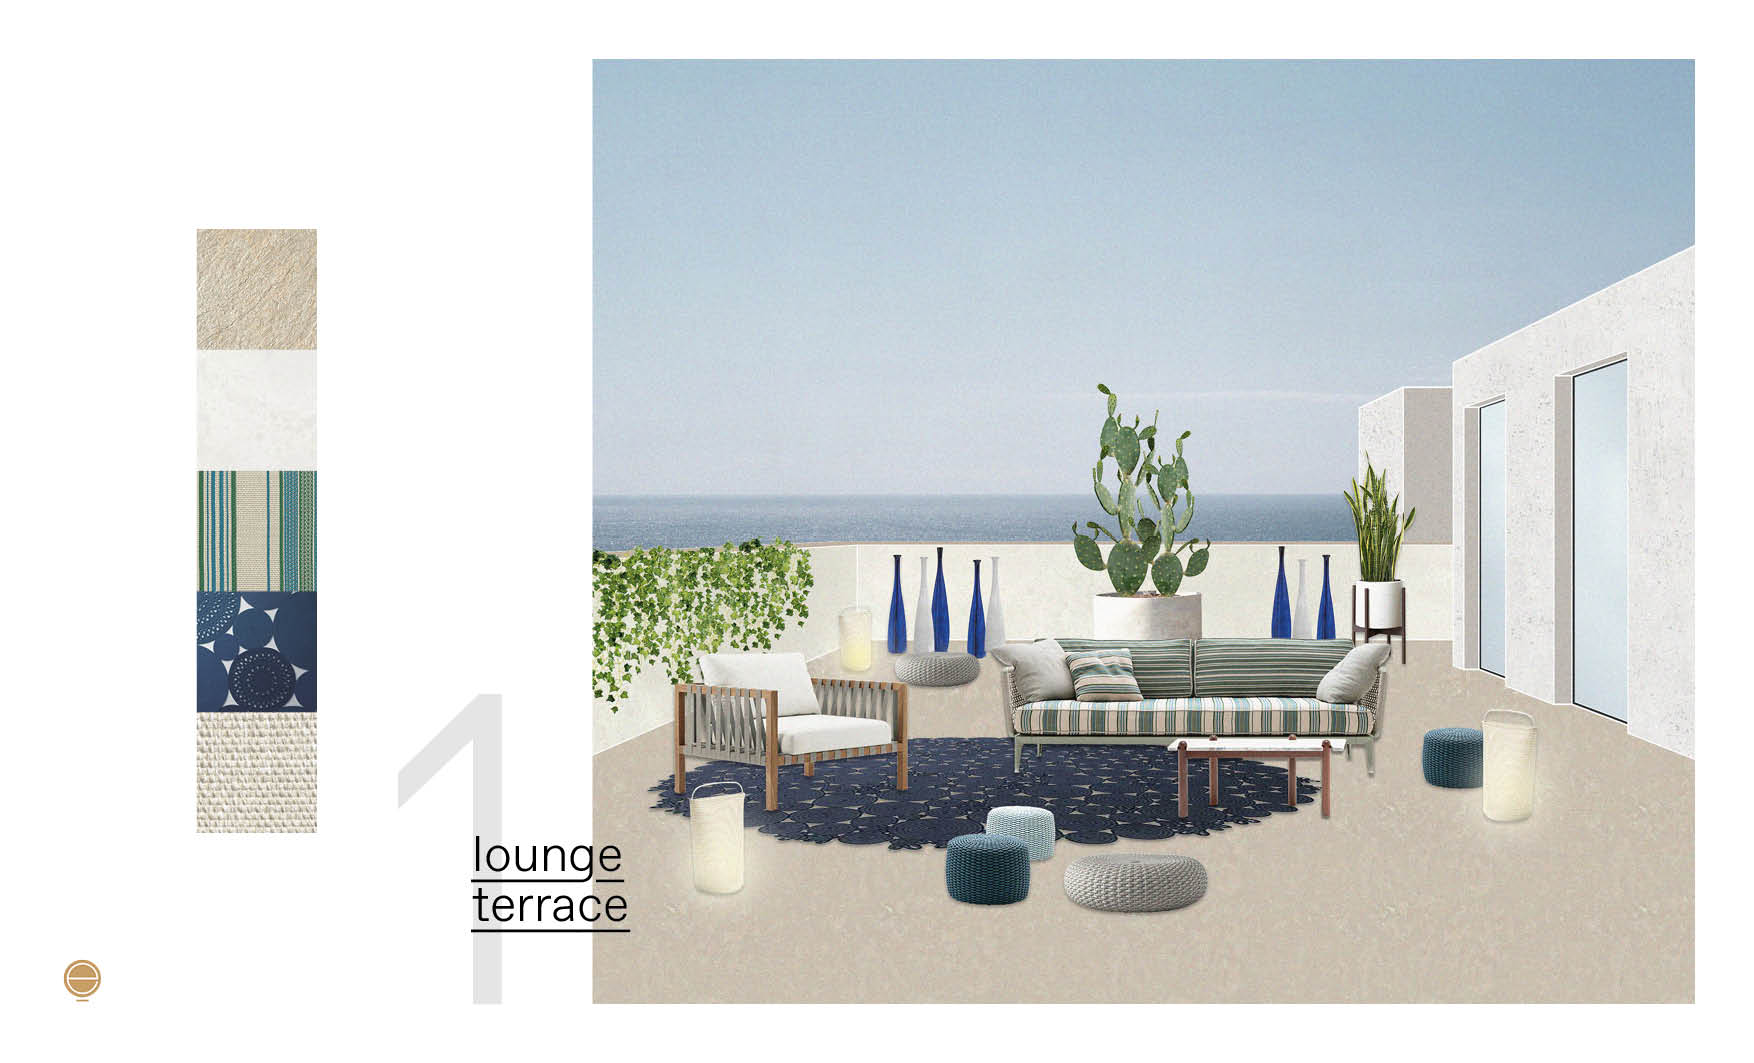 lounge Italian patio design project made by esperiri team